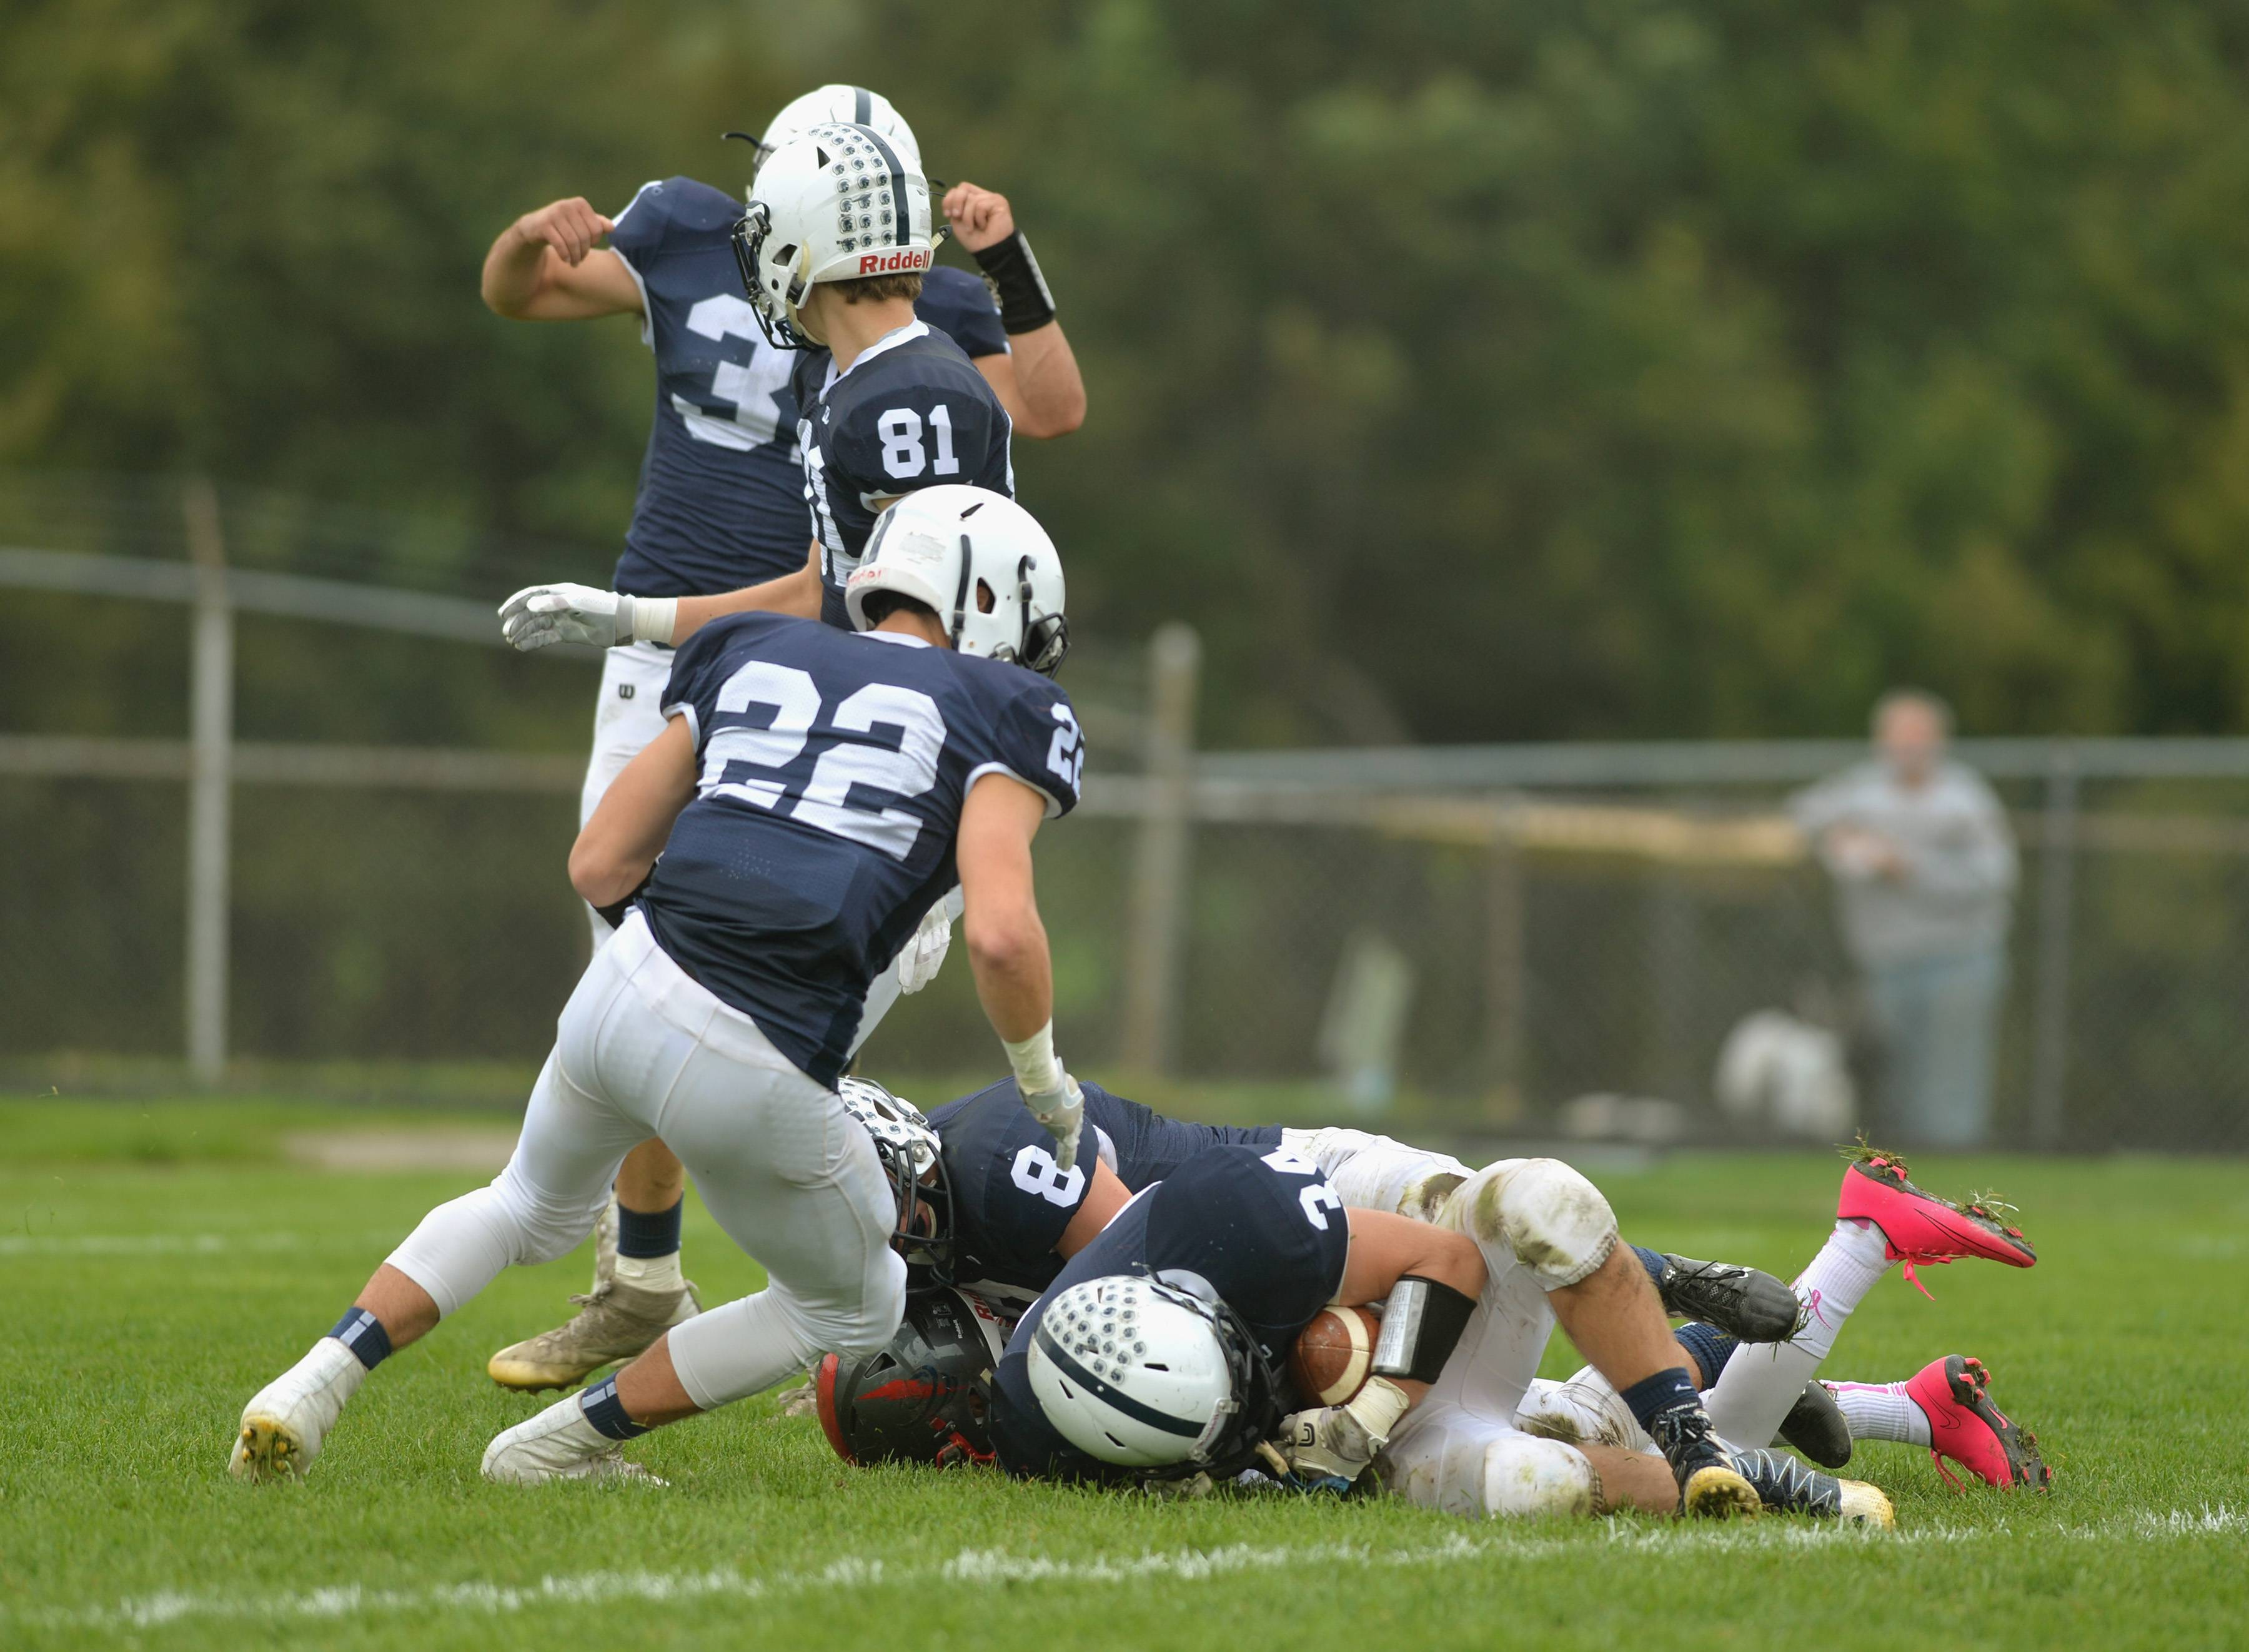 Cary-Grove defensive back Kevin Pedersen recovers the ball in the end zone for a touchdown after a blocked punt in the first quarter Saturday in Cary.